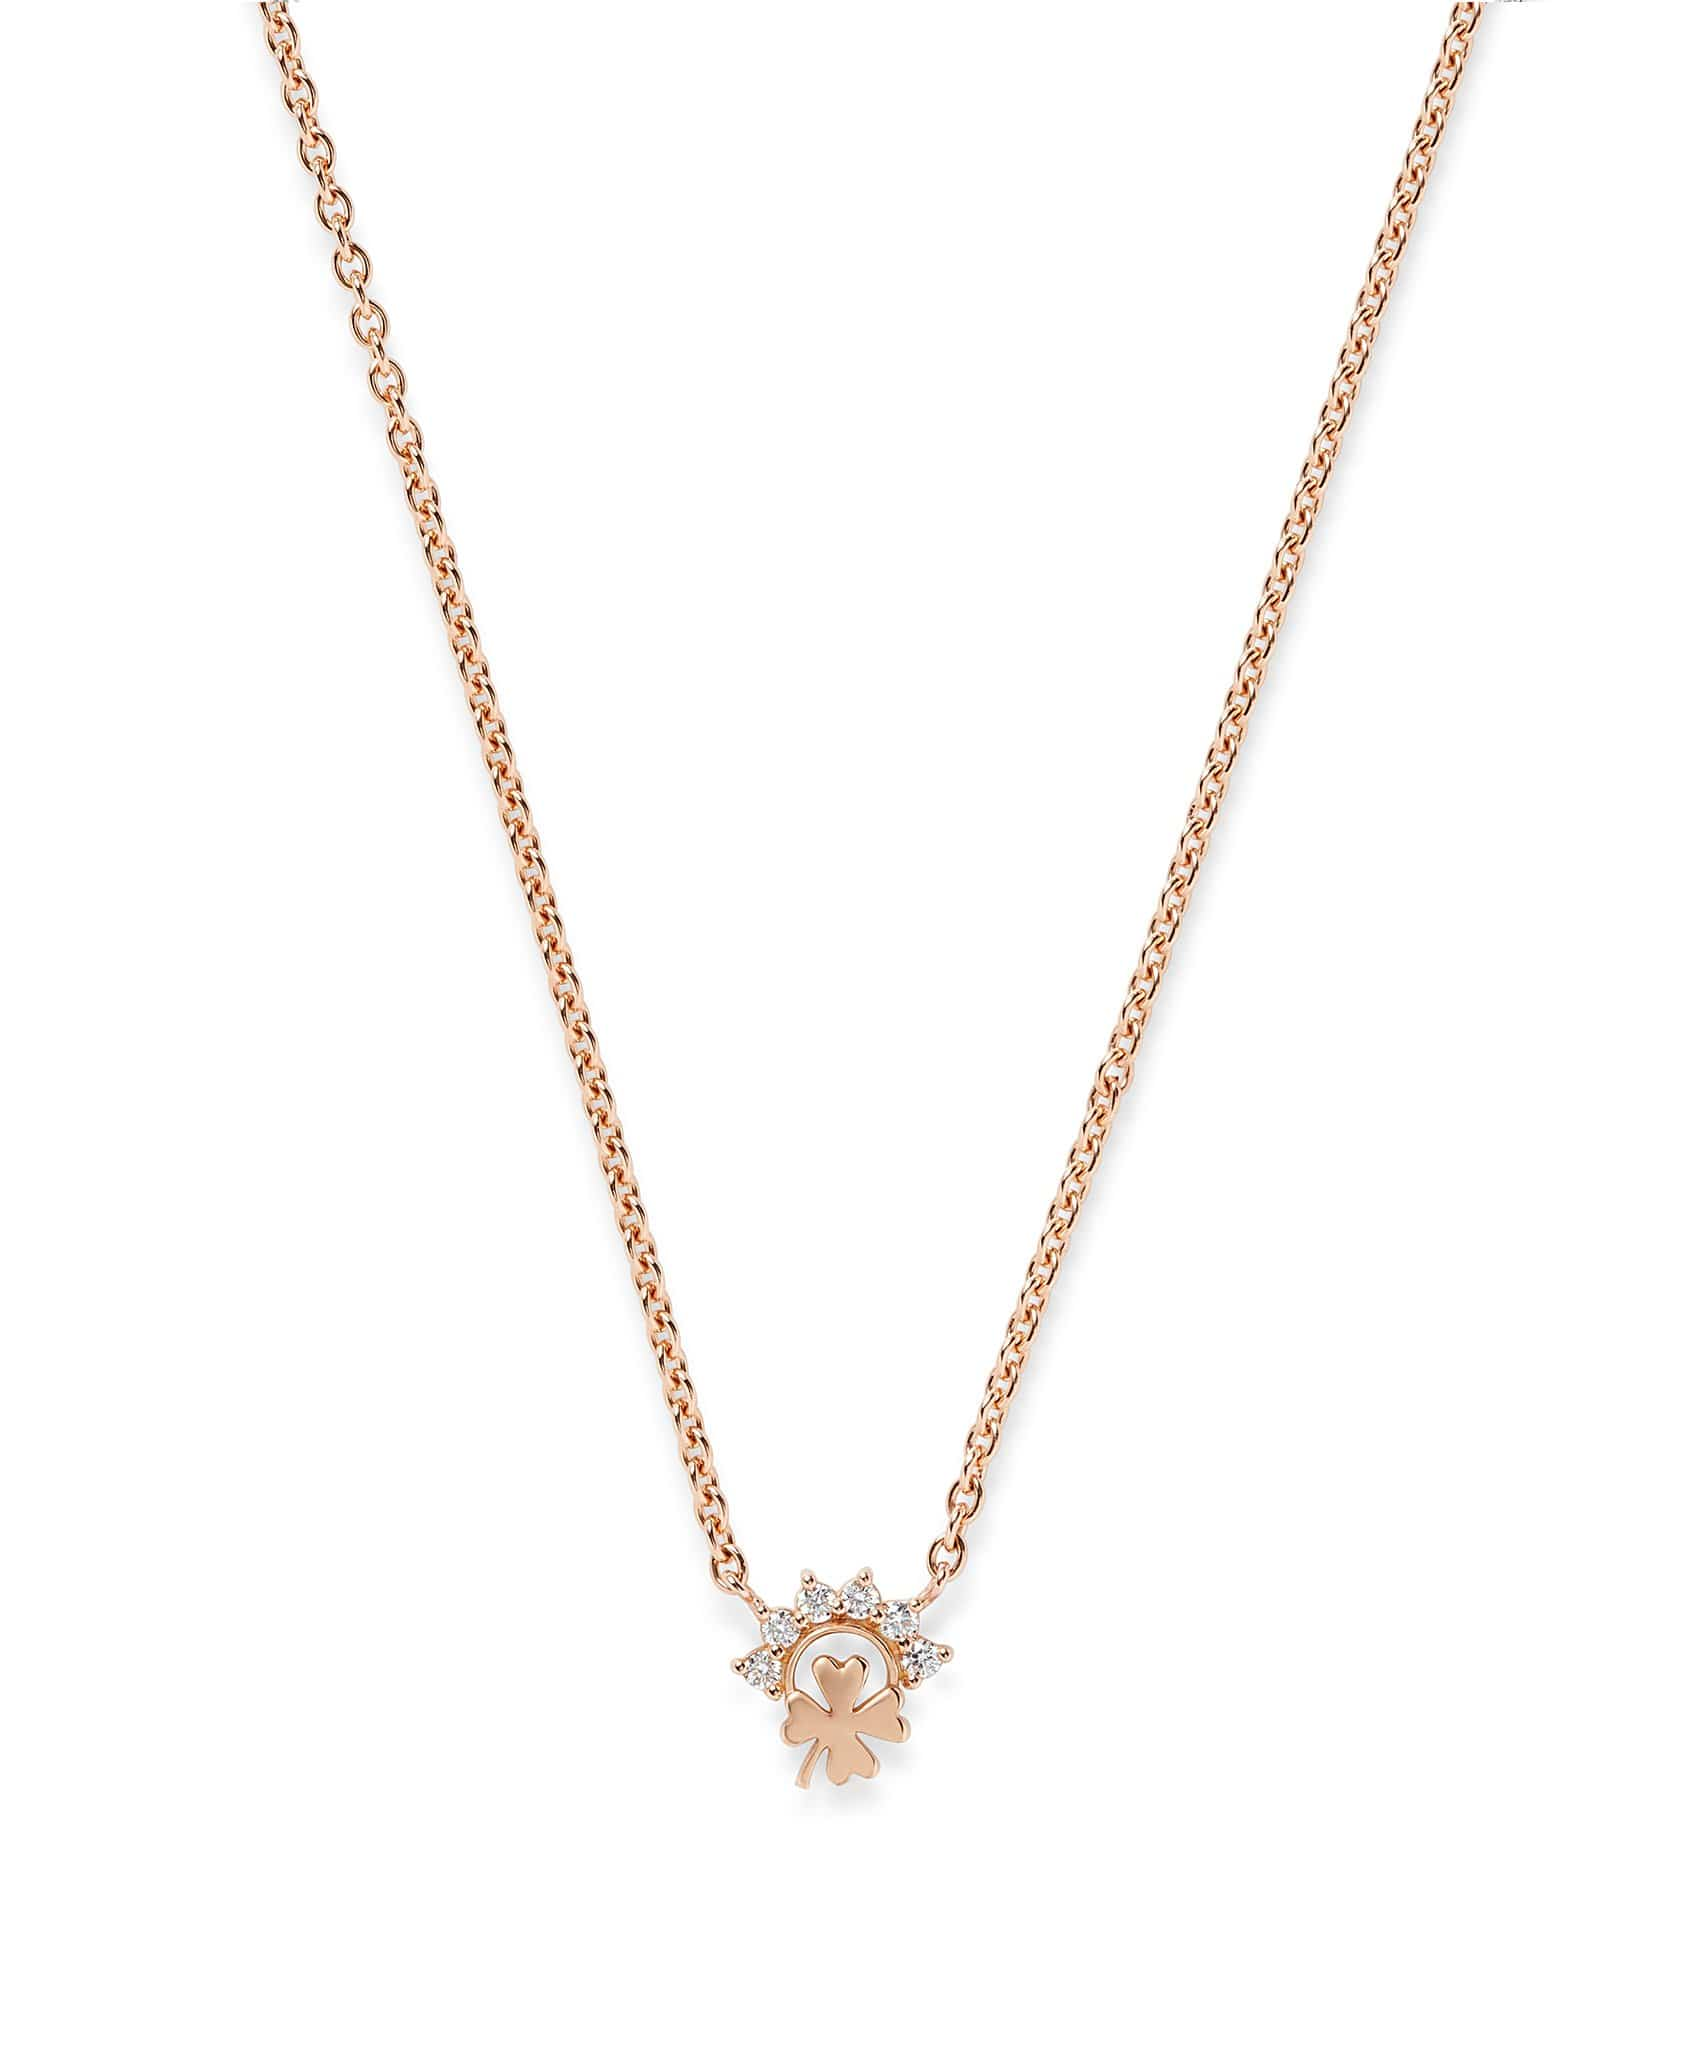 Small Luck Pendant: Discover Luxury Fine Jewelry | Nouvel Heritage || Rose Gold